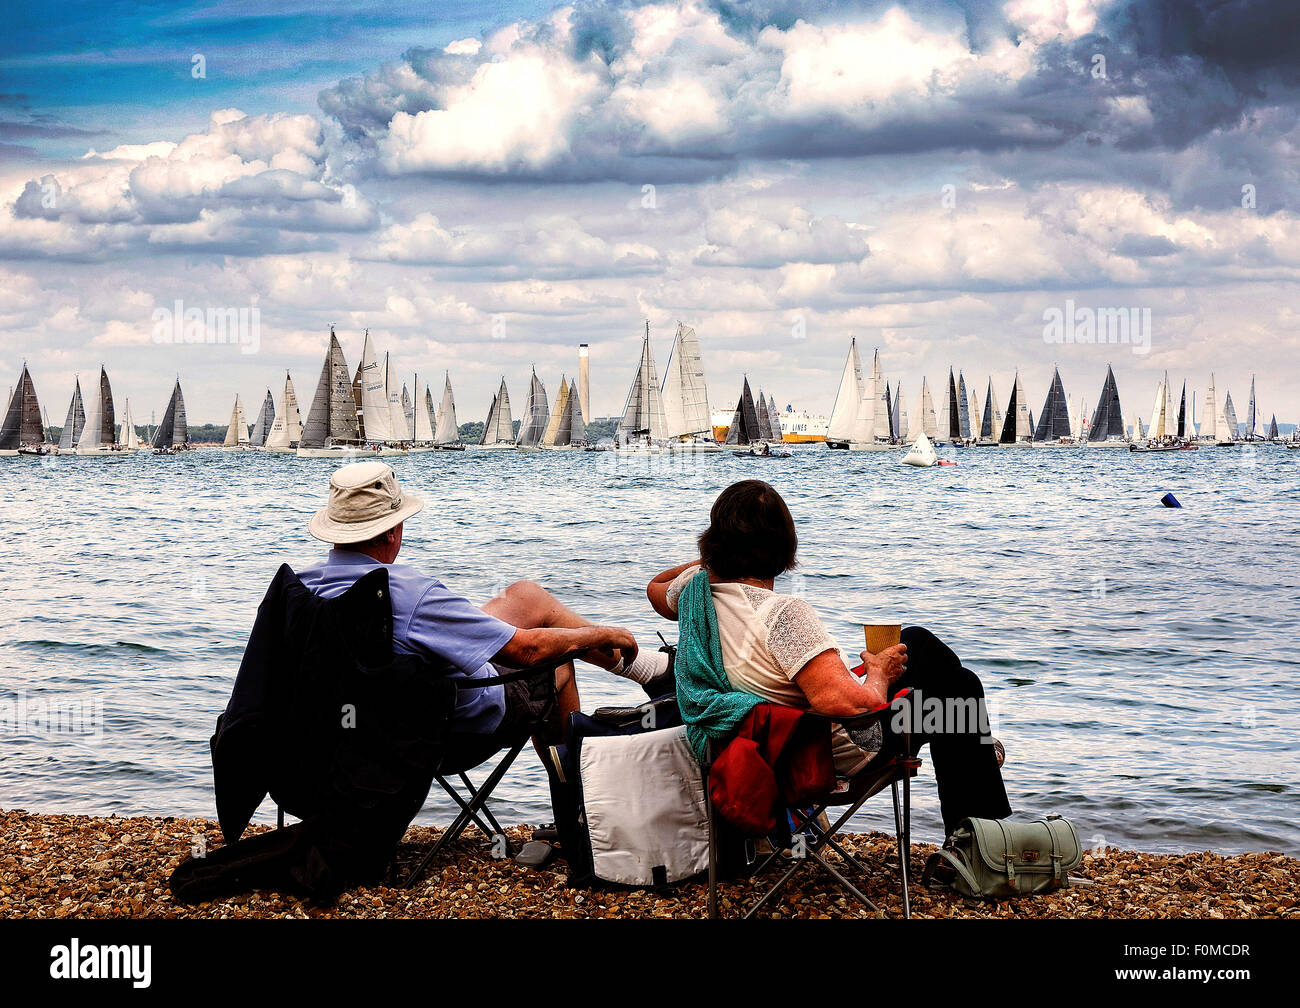 The start of the Fastnet 2015 race is closely watched by relaxing tourists to the Isle of Wight - Stock Image